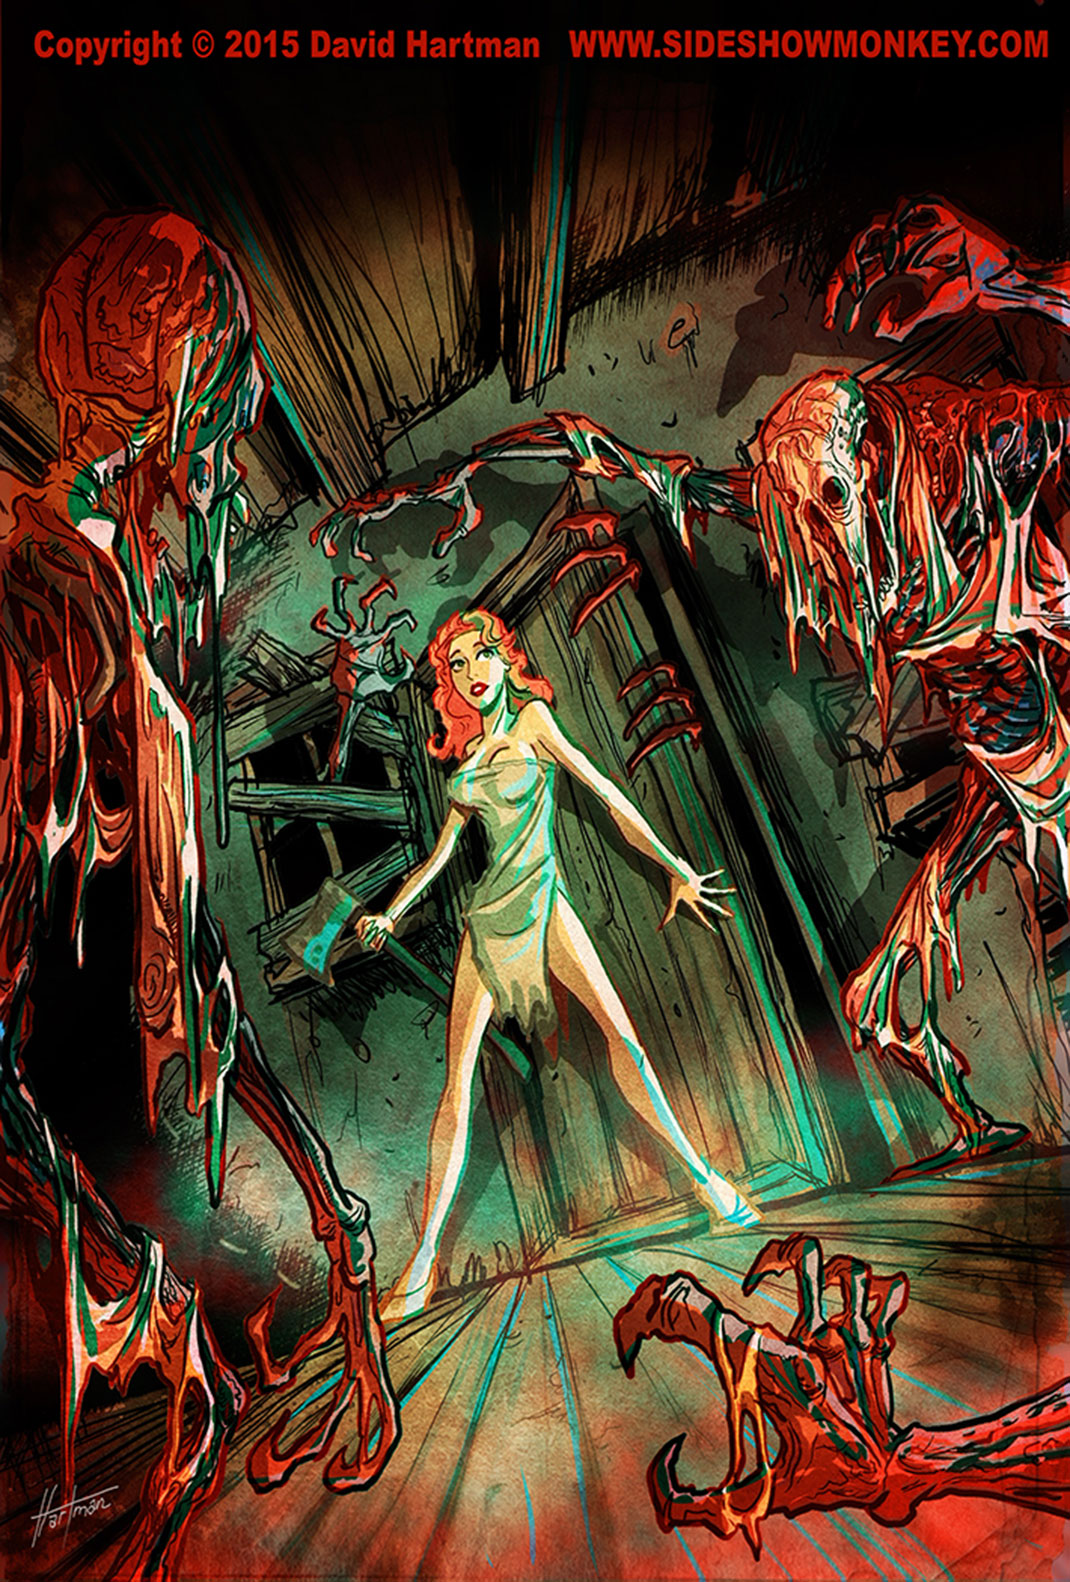 unwanted_guests_by_hartman_by_sideshowmonkey-d8nxel4